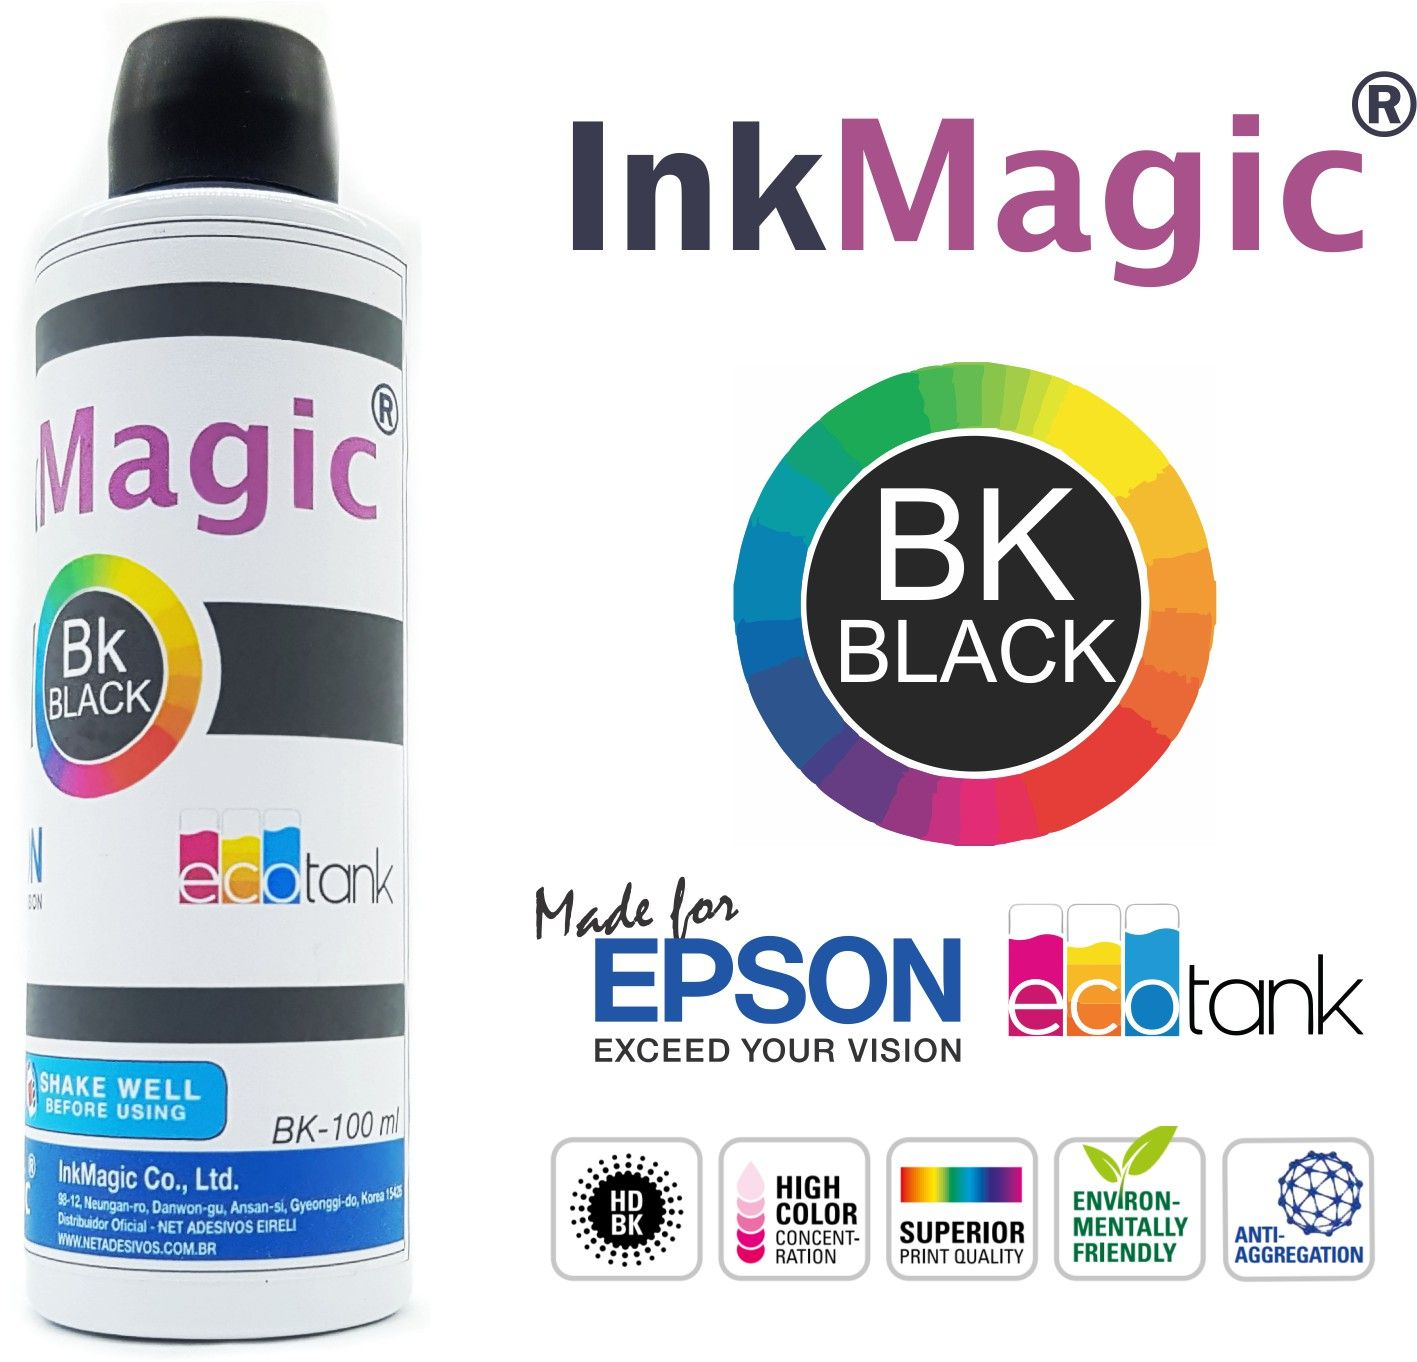 Tinta Sublimatica InkMagic - kit 4 cores x 100 ml + ICC